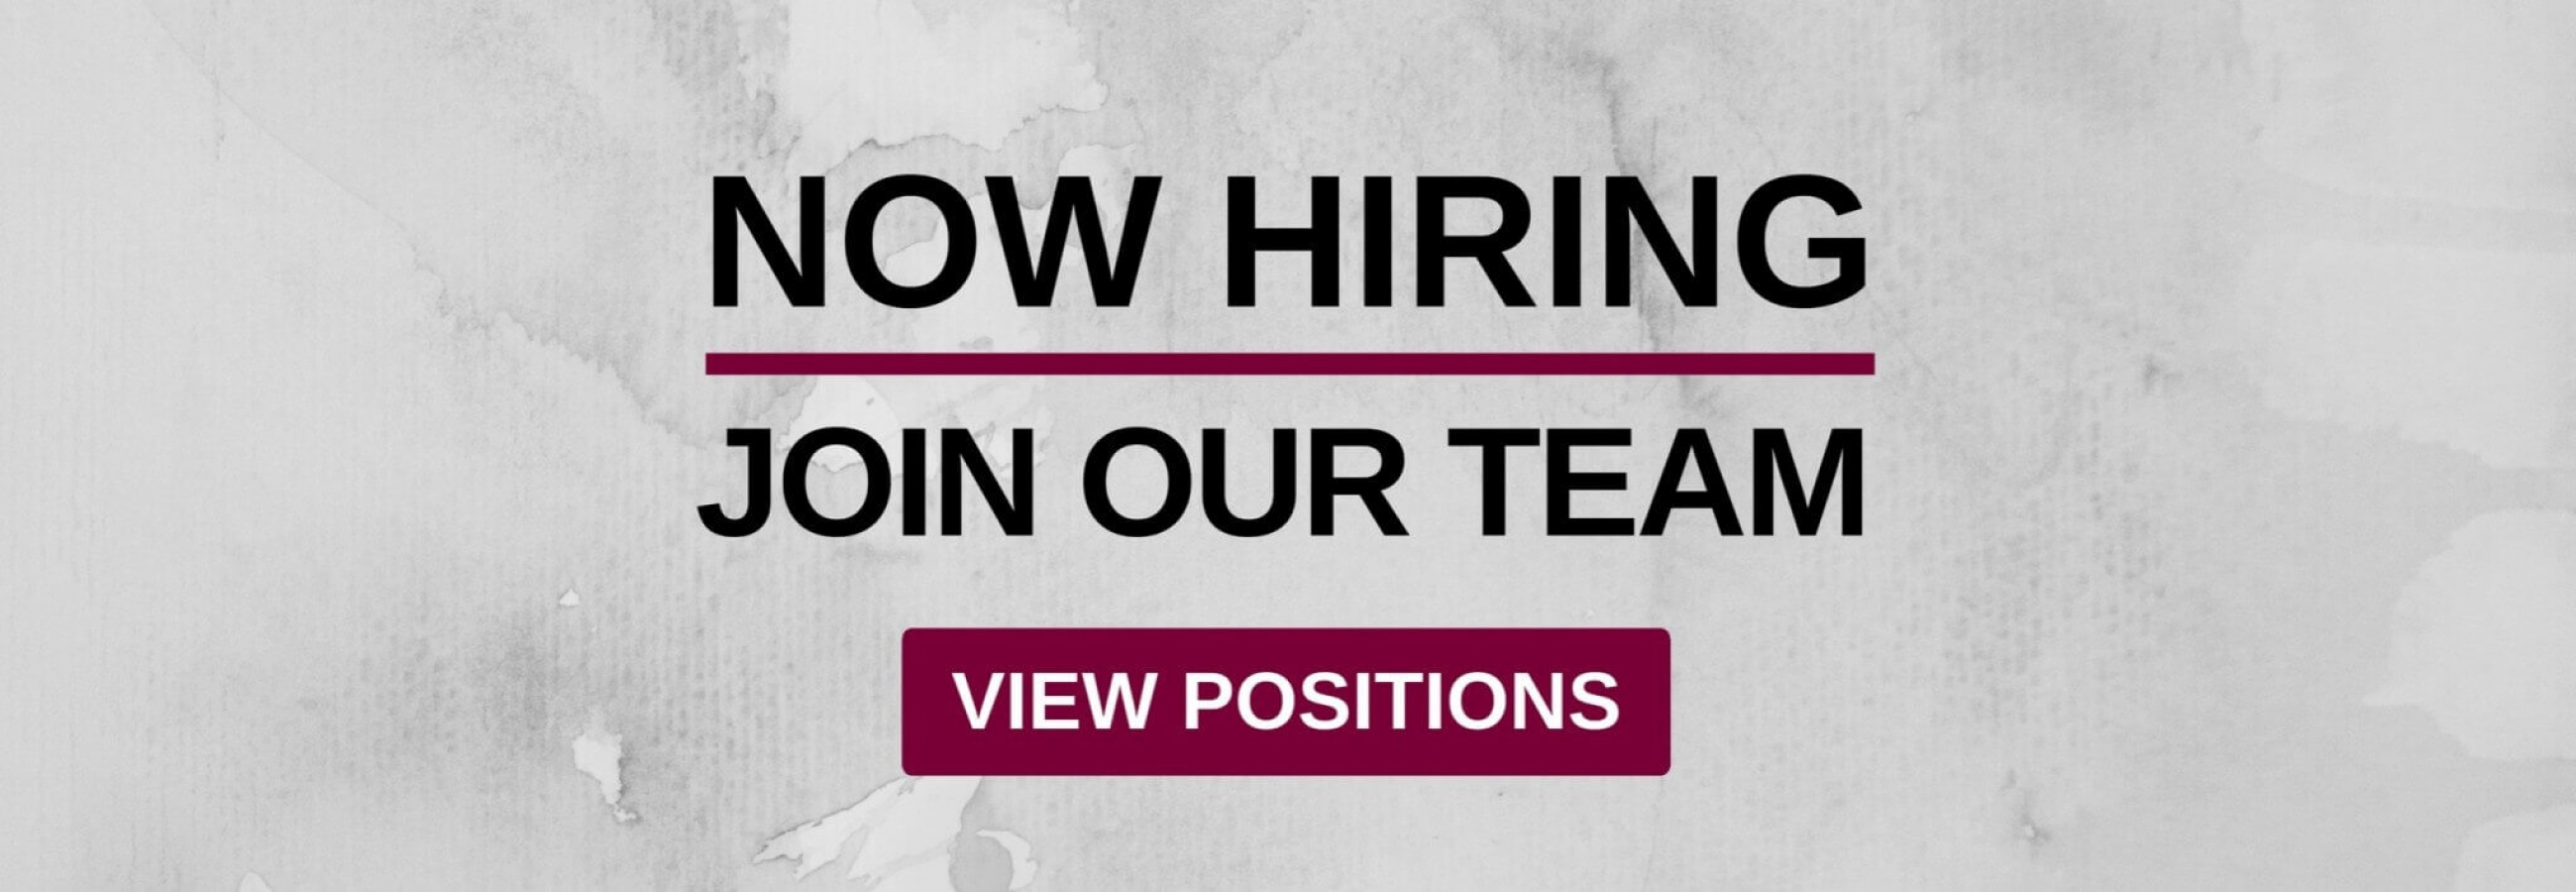 NOW-HIRING-VIEW-POSITIONS